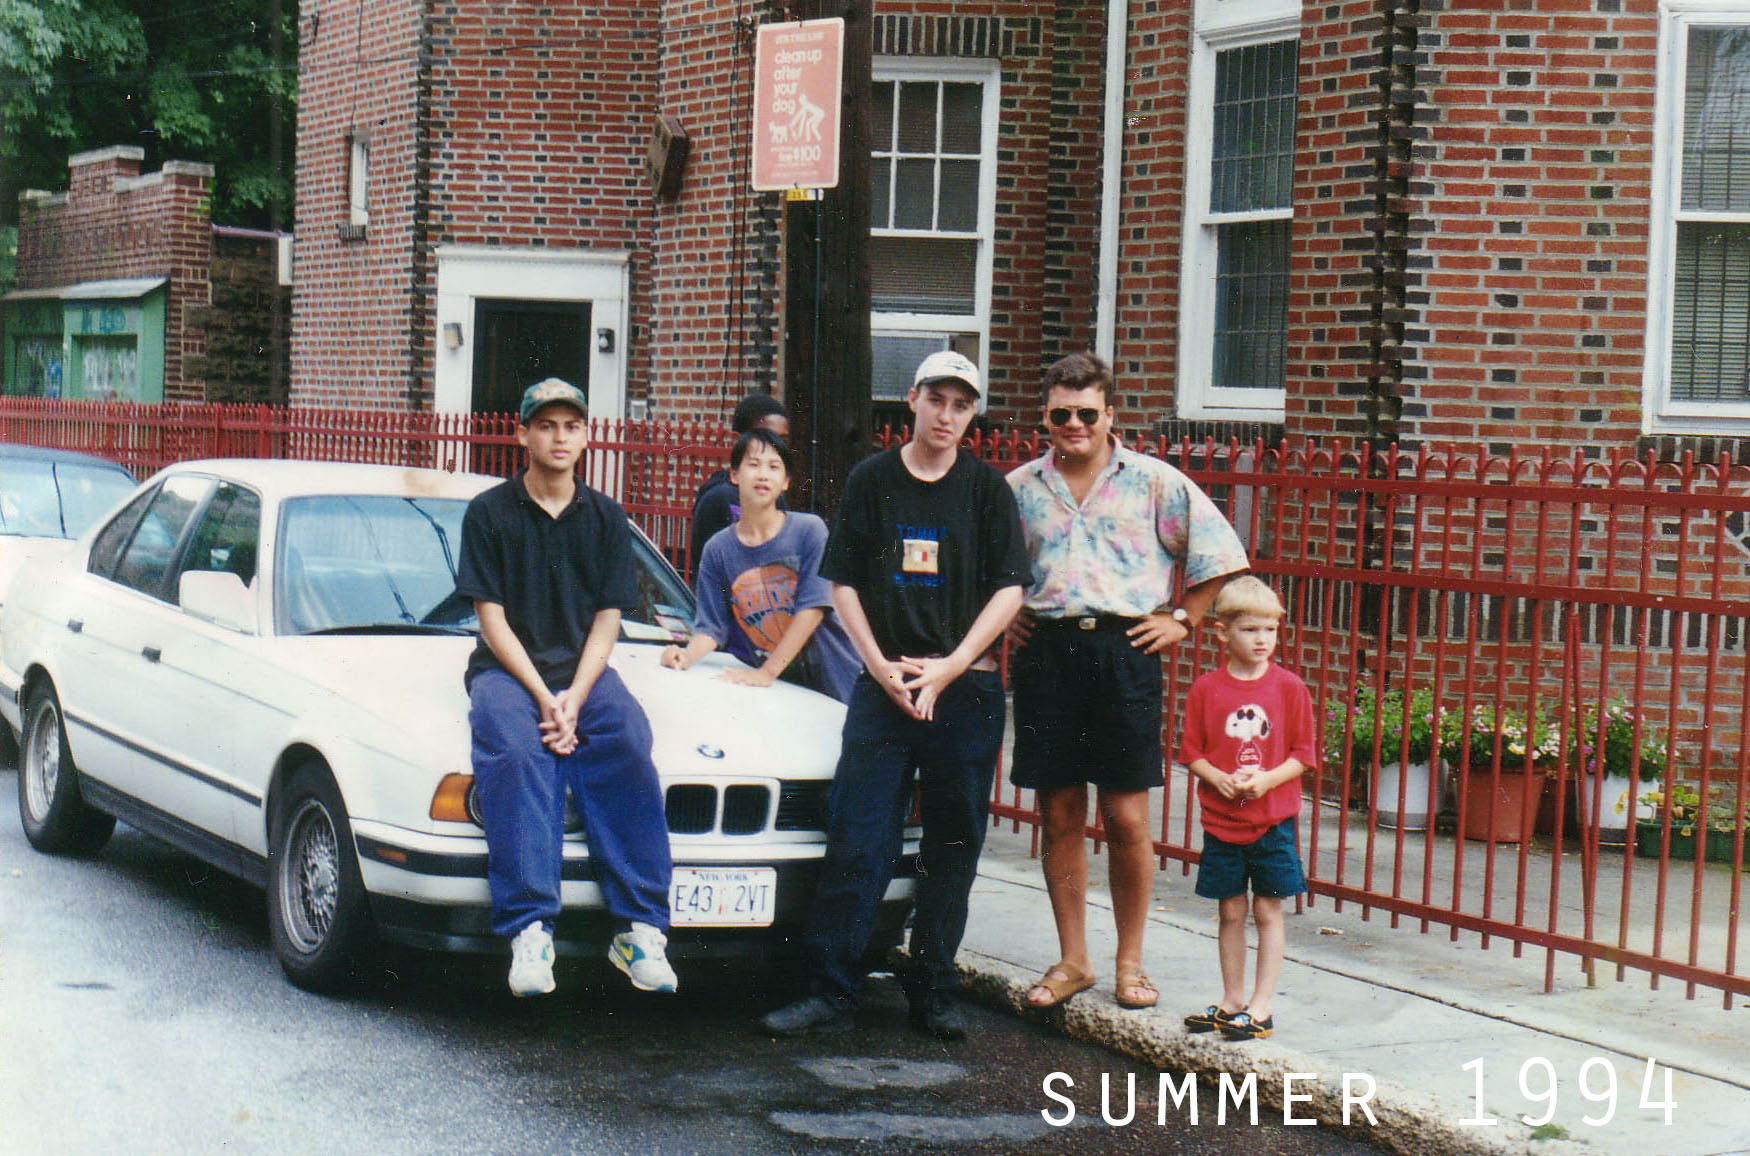 age-18-summer-1994-jpg.44453_Pics of us as youngsters compared to now_People & Cultures_Squat the Planet_11:10 AM